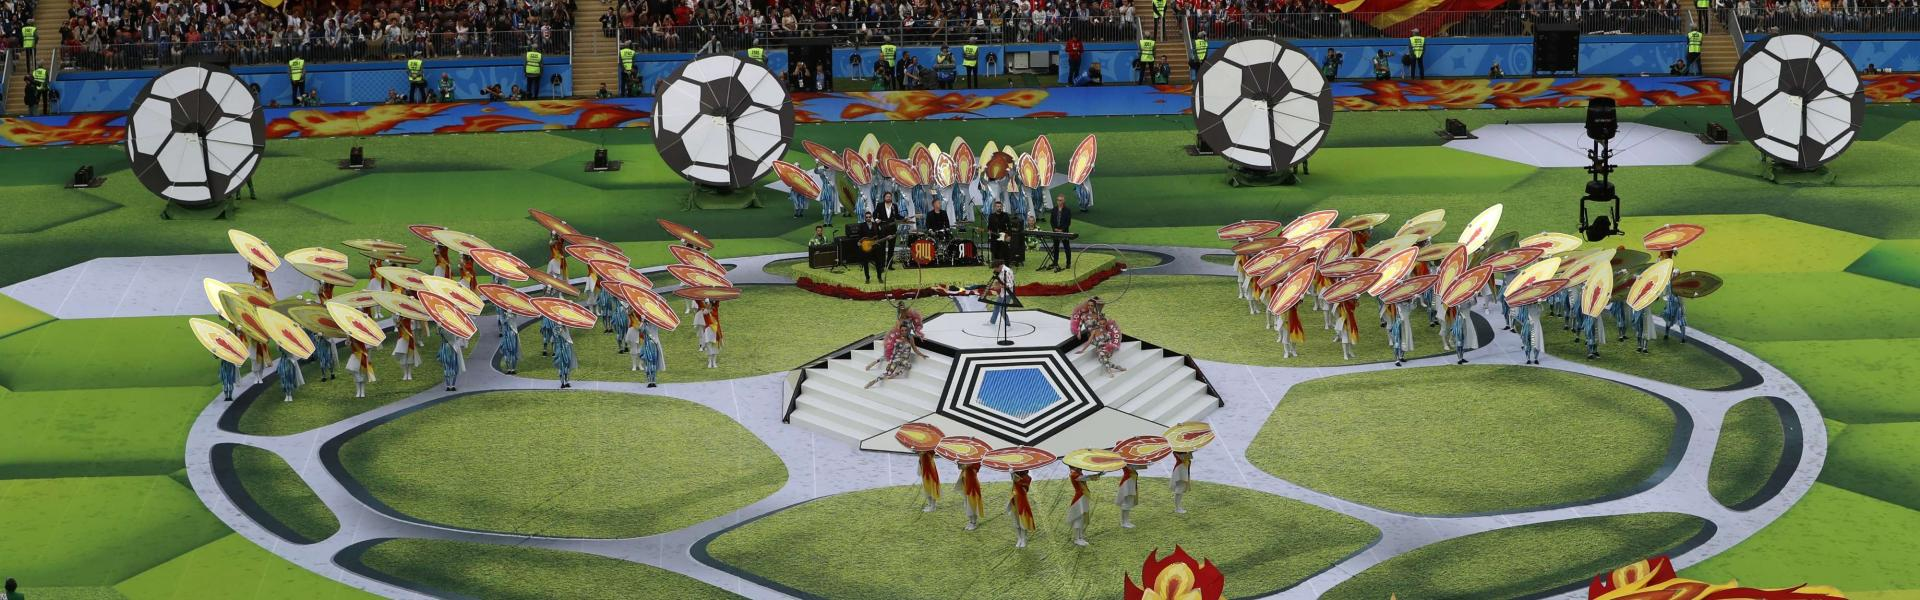 Artists perform before the group A match between Russia and Saudi Arabia which opens the 2018 soccer World Cup at the Luzhniki stadium in Moscow, Russia on June 14, 2018.